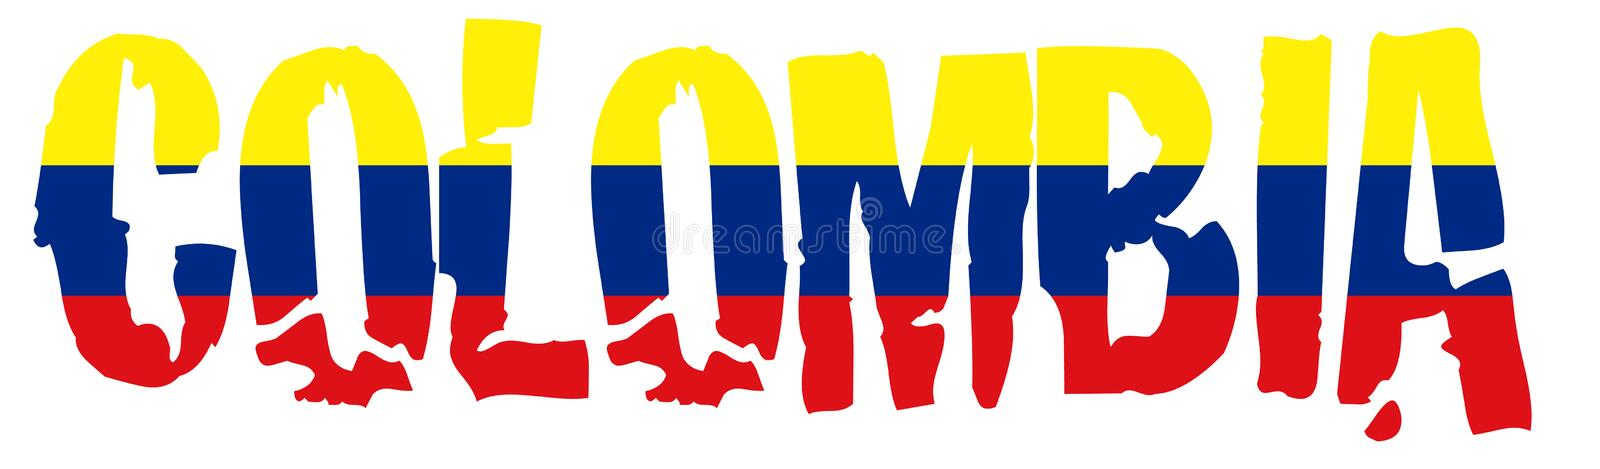 colombia flagganamn royaltyfri illustrationer